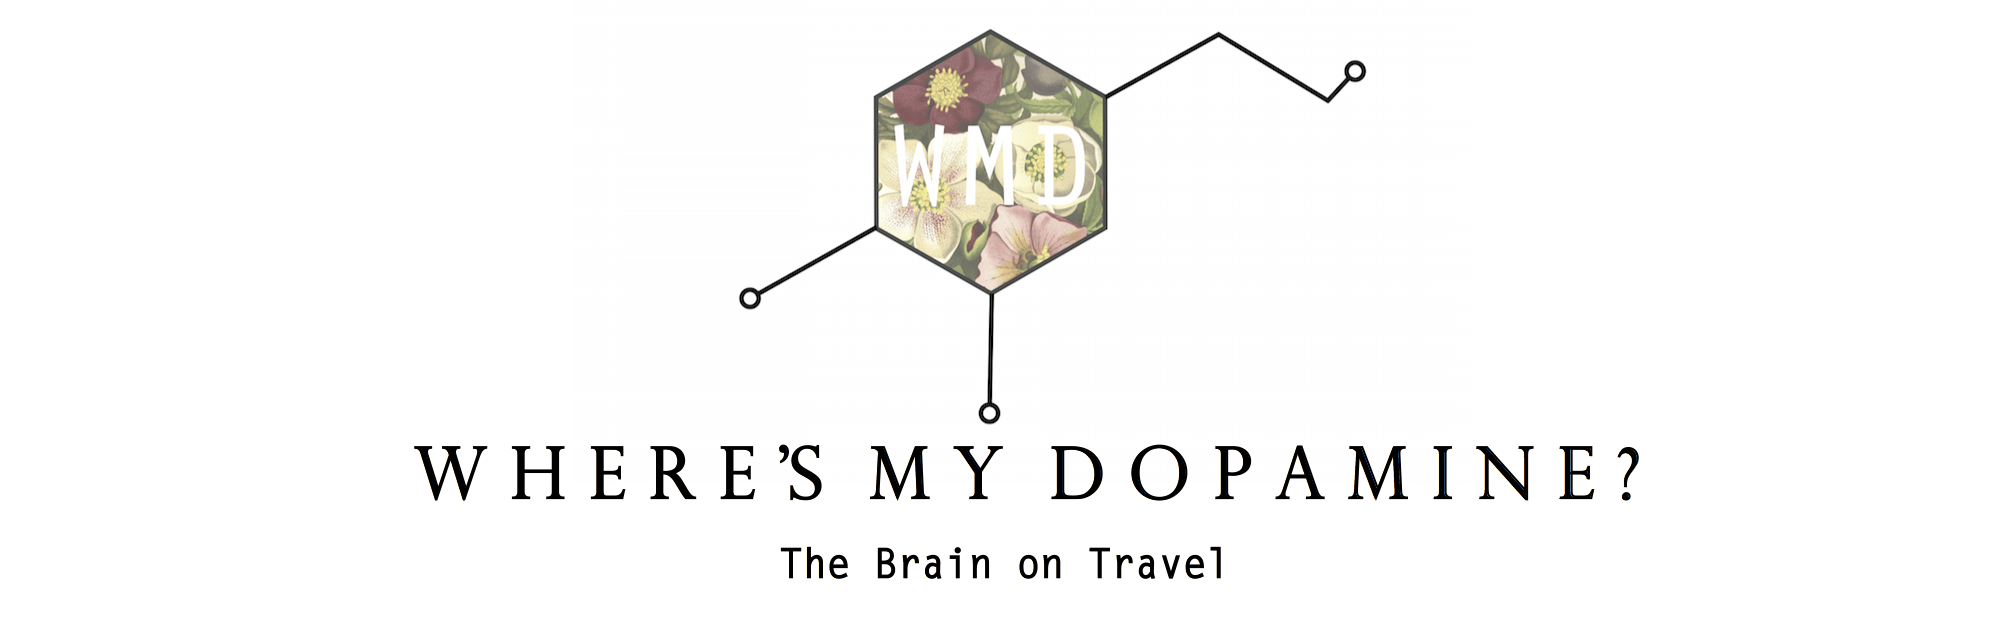 Where's my Dopamine?